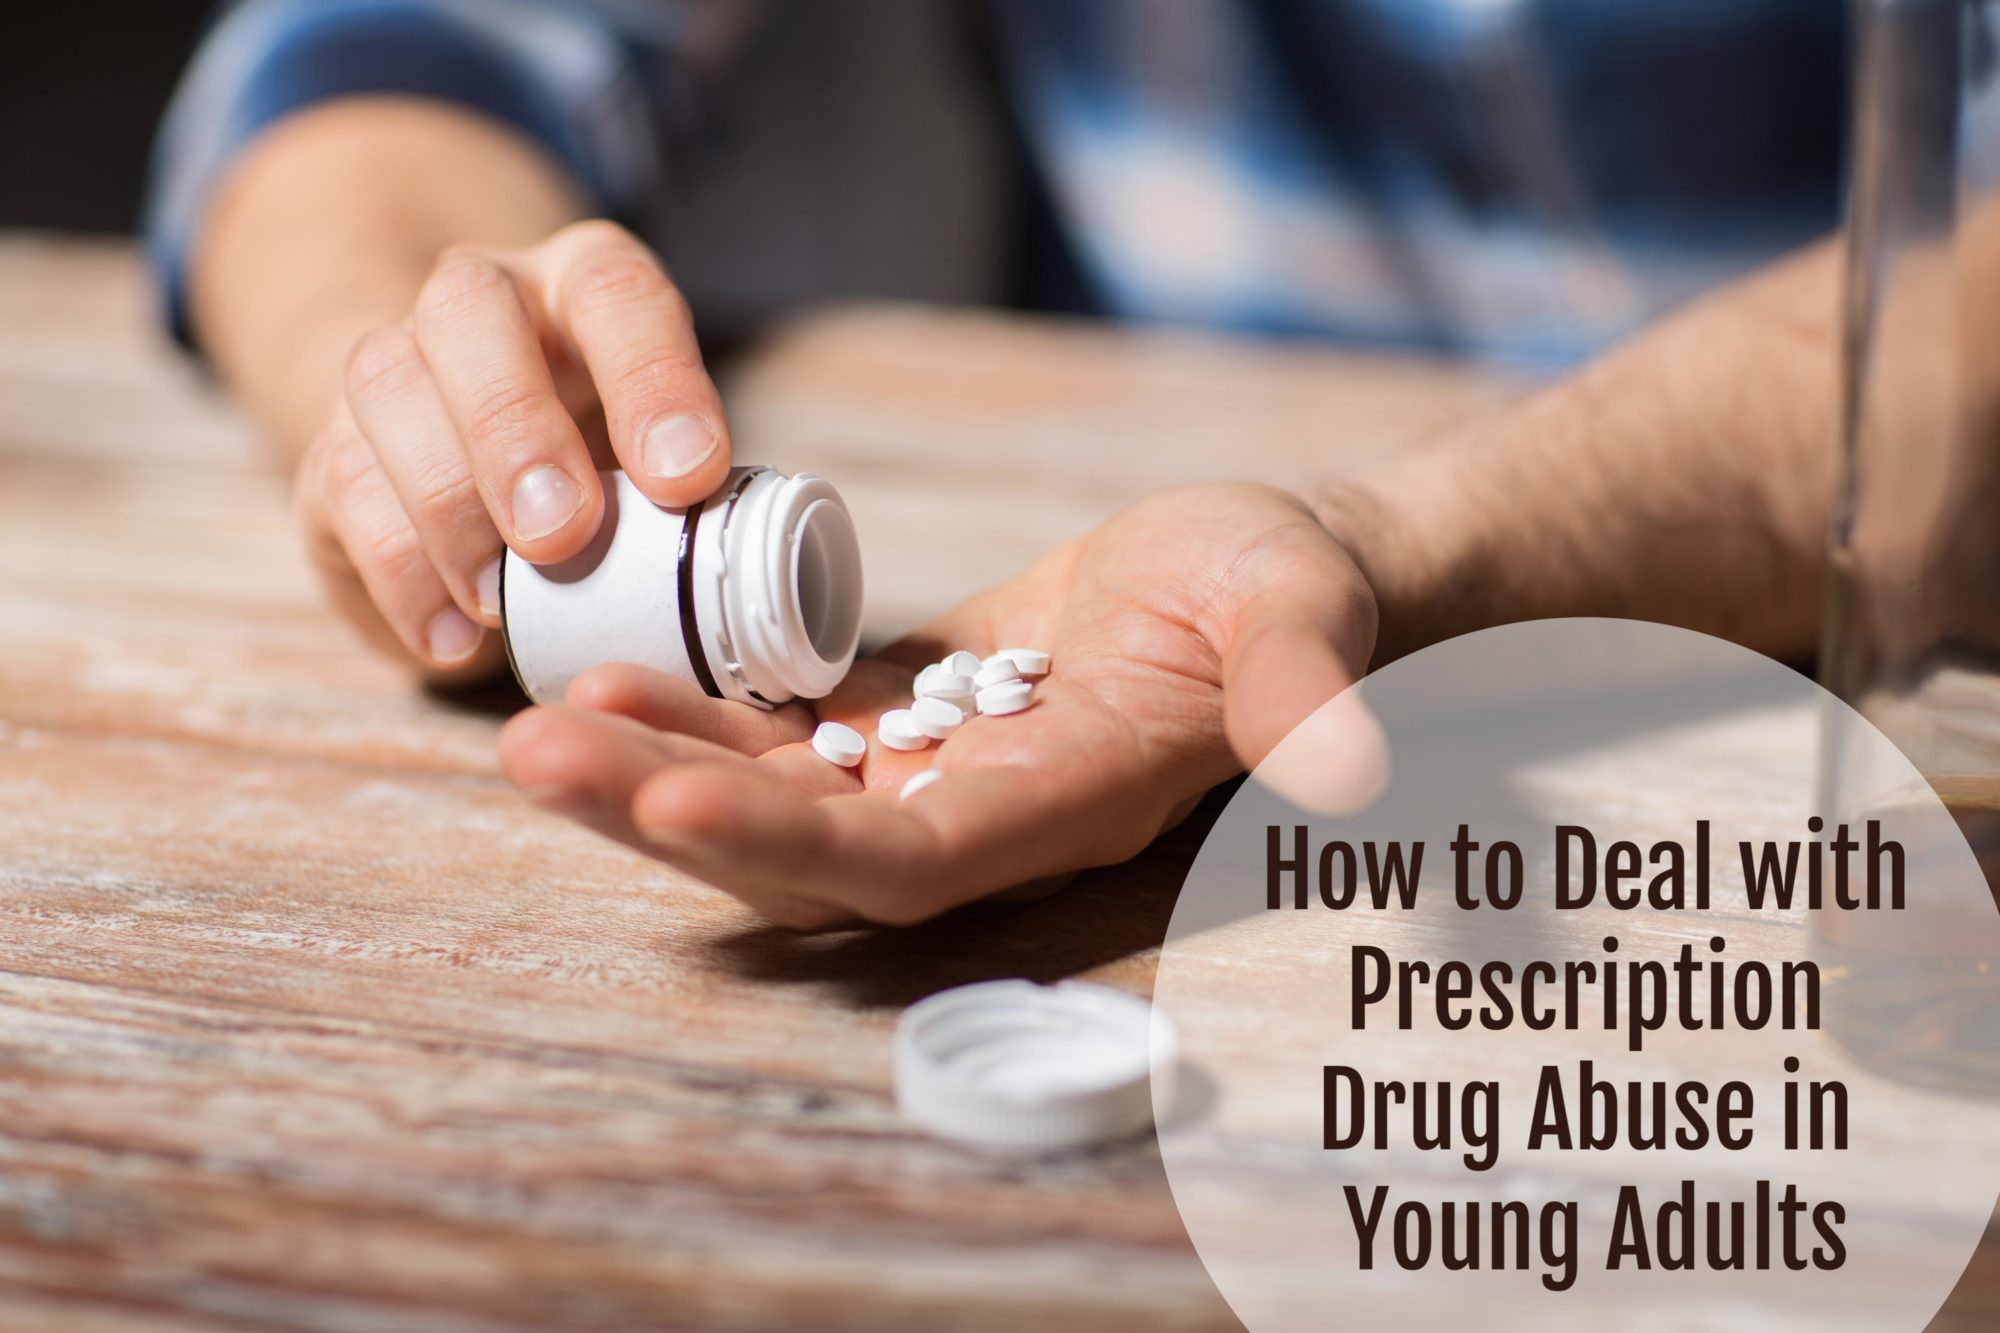 How to deal with prescription drug abuse in young adults